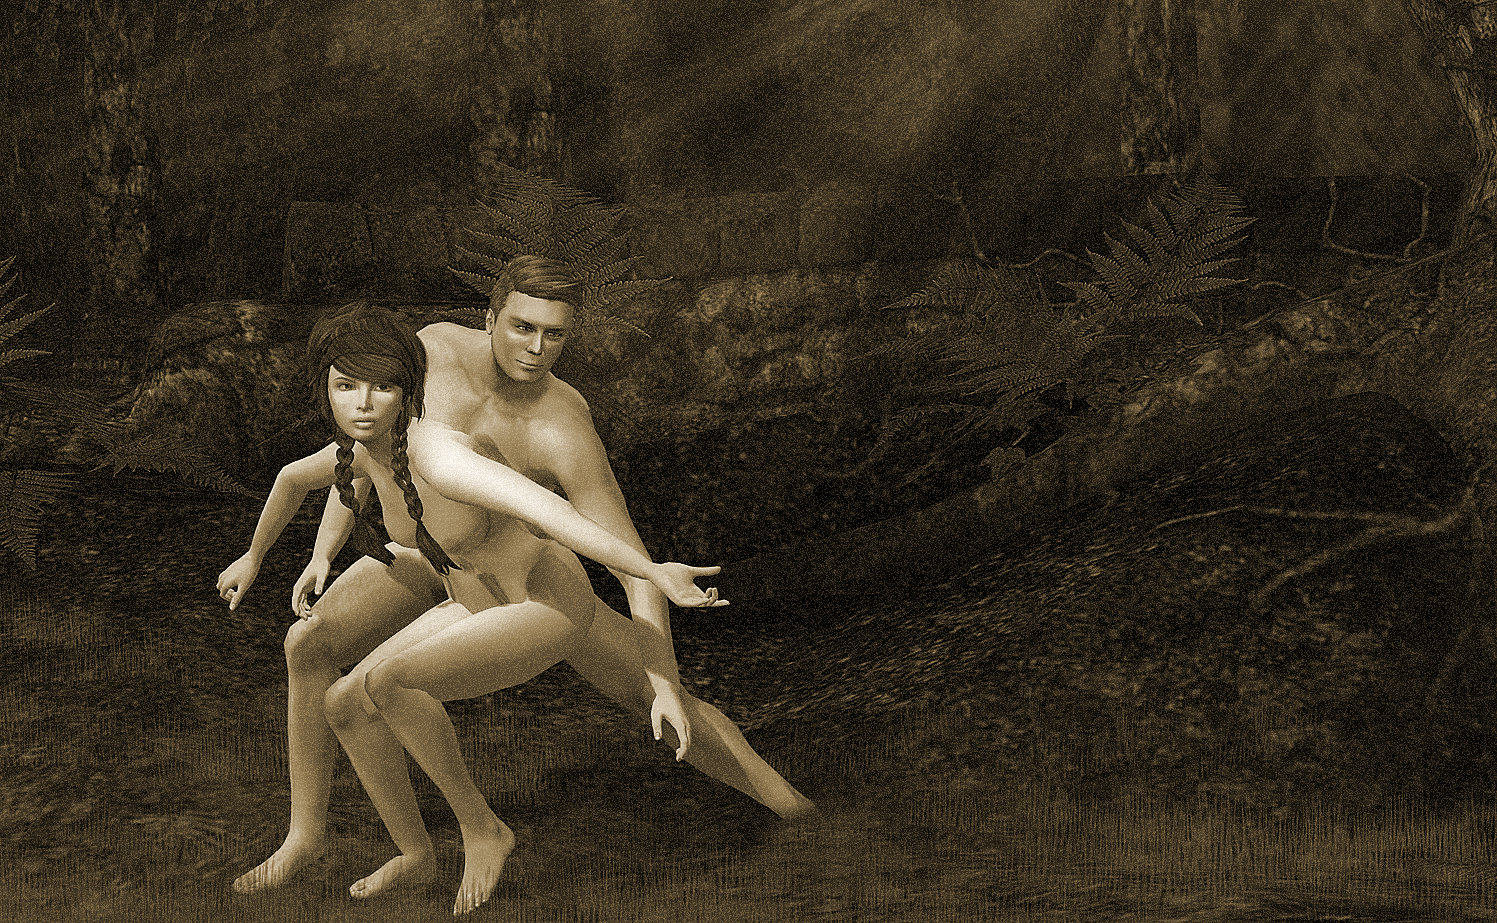 Adam and Eve by Caitlin Tobias, January 2014